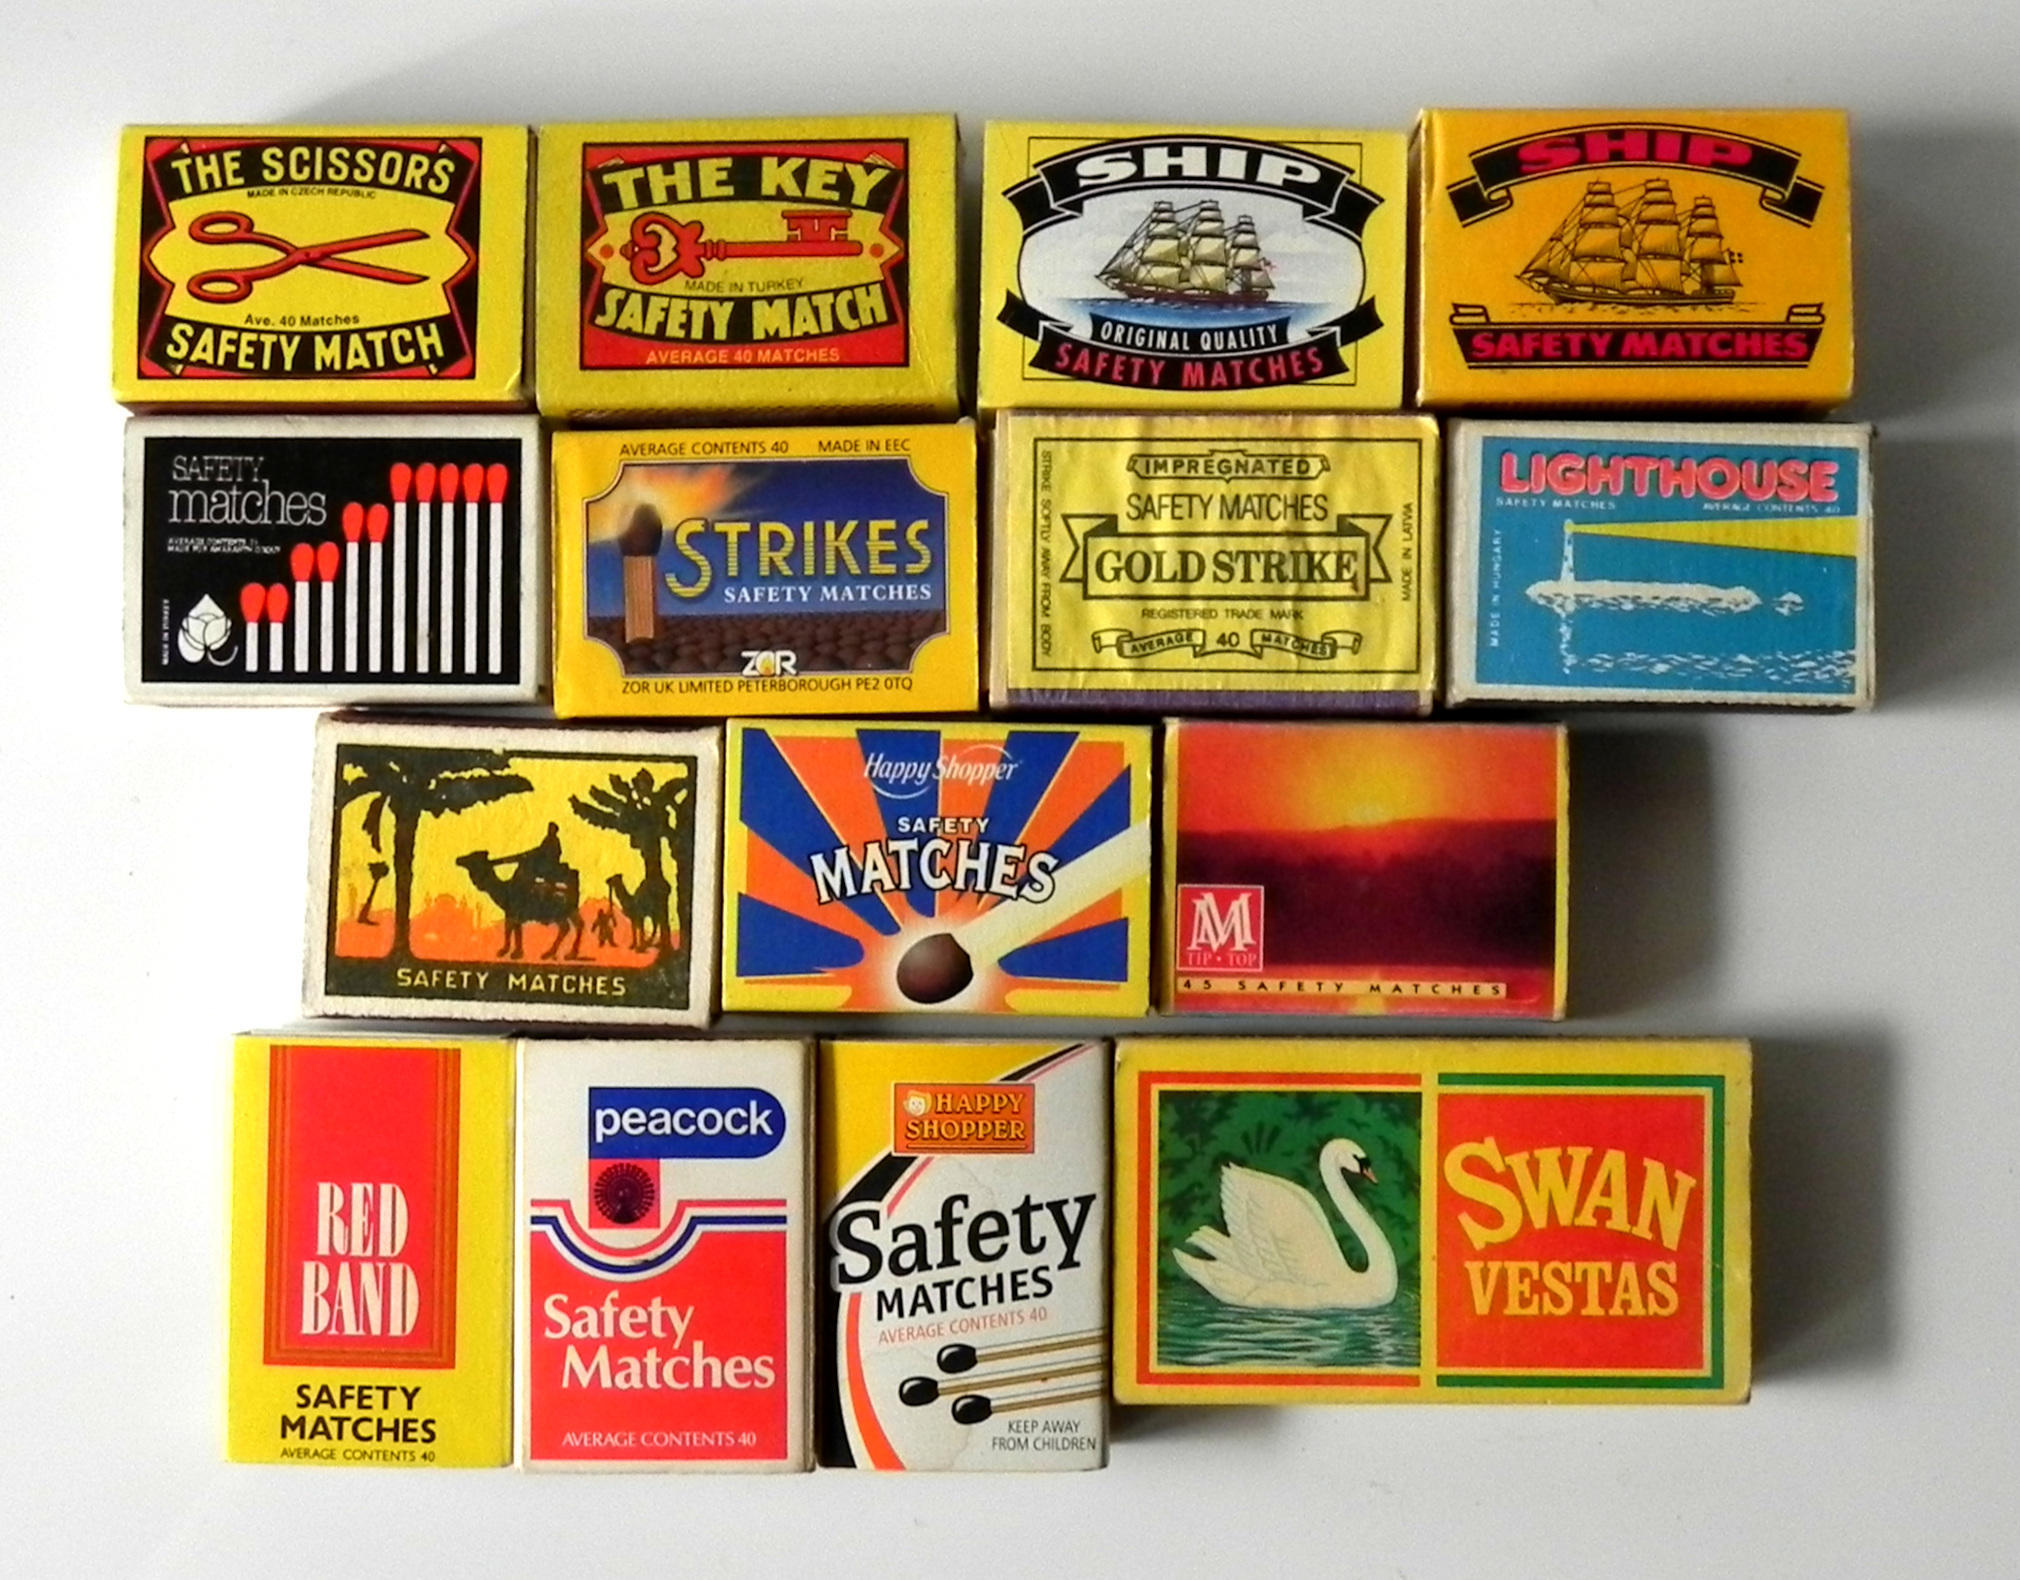 *AMAZING* Collection of 158 Matchboxes and matchbooks from